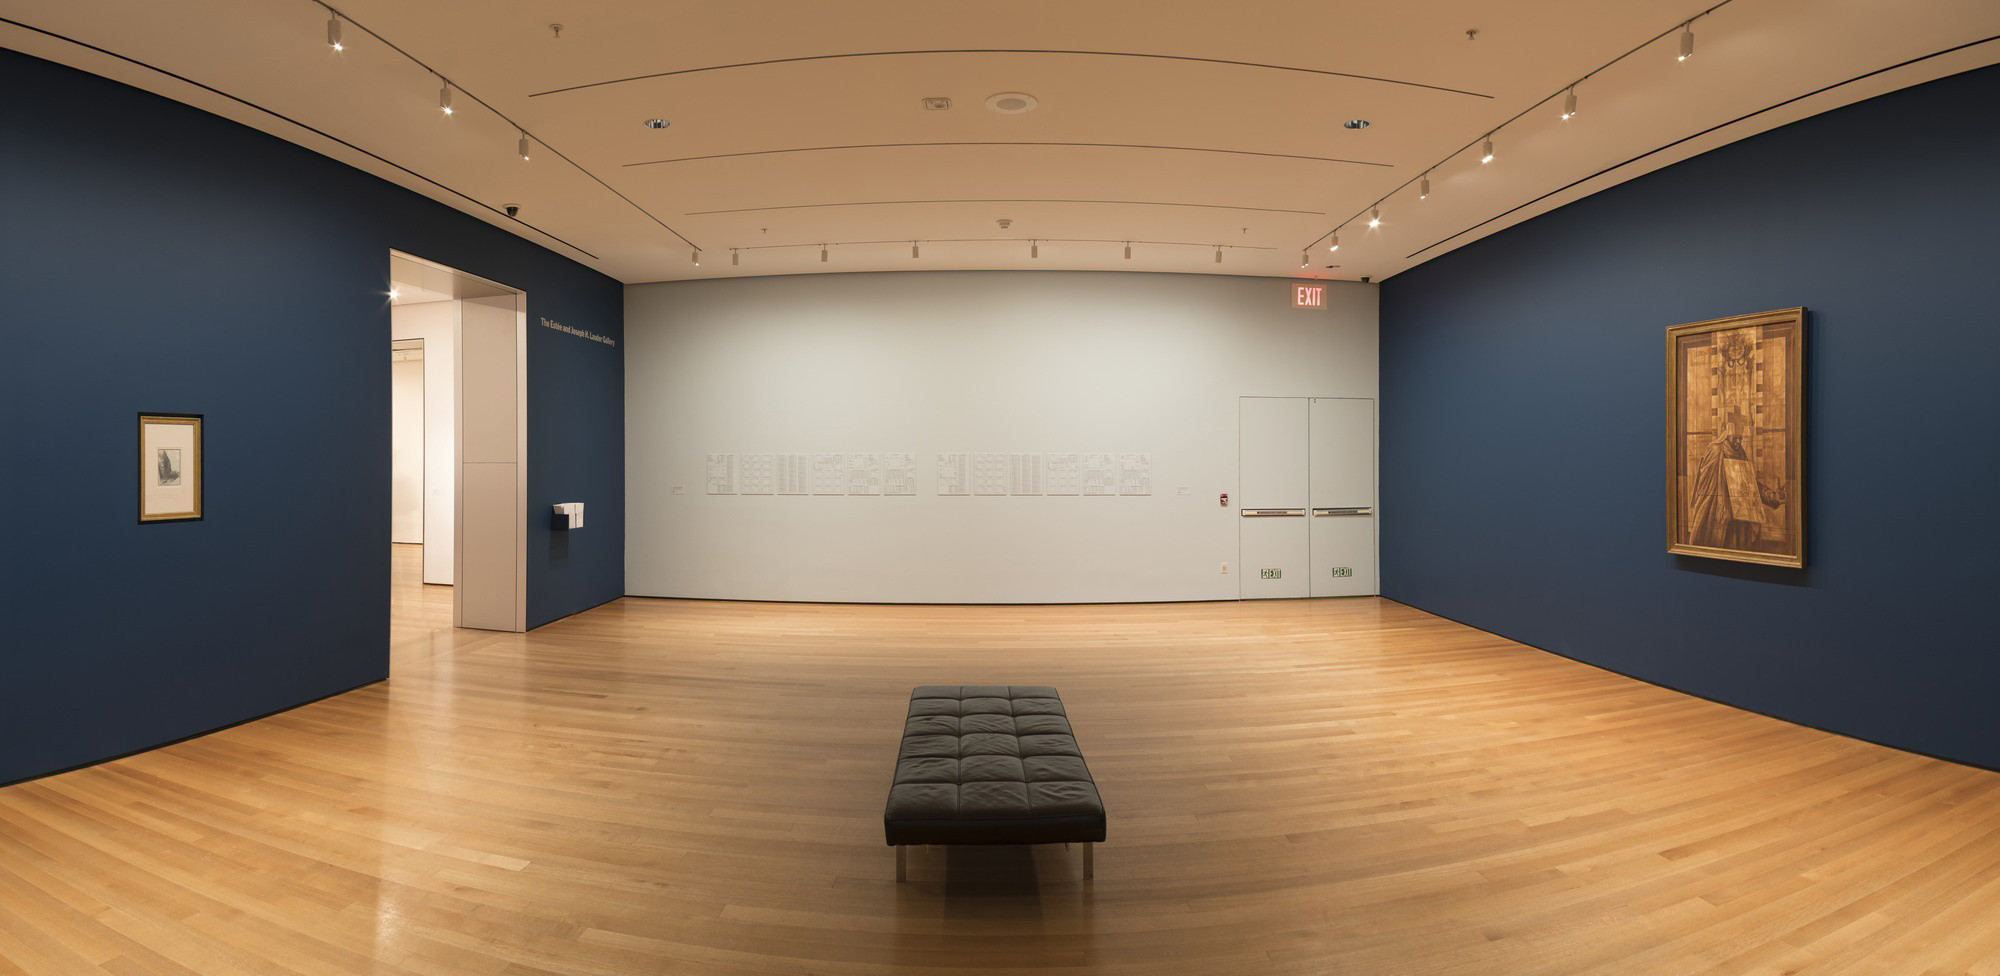 Installation view of Charles White—Leonardo da Vinci. Curated by David Hammons, The Museum of Modern Art, October 7, 2017–January 1, 2018. The Museum of Modern Art Archives, New York